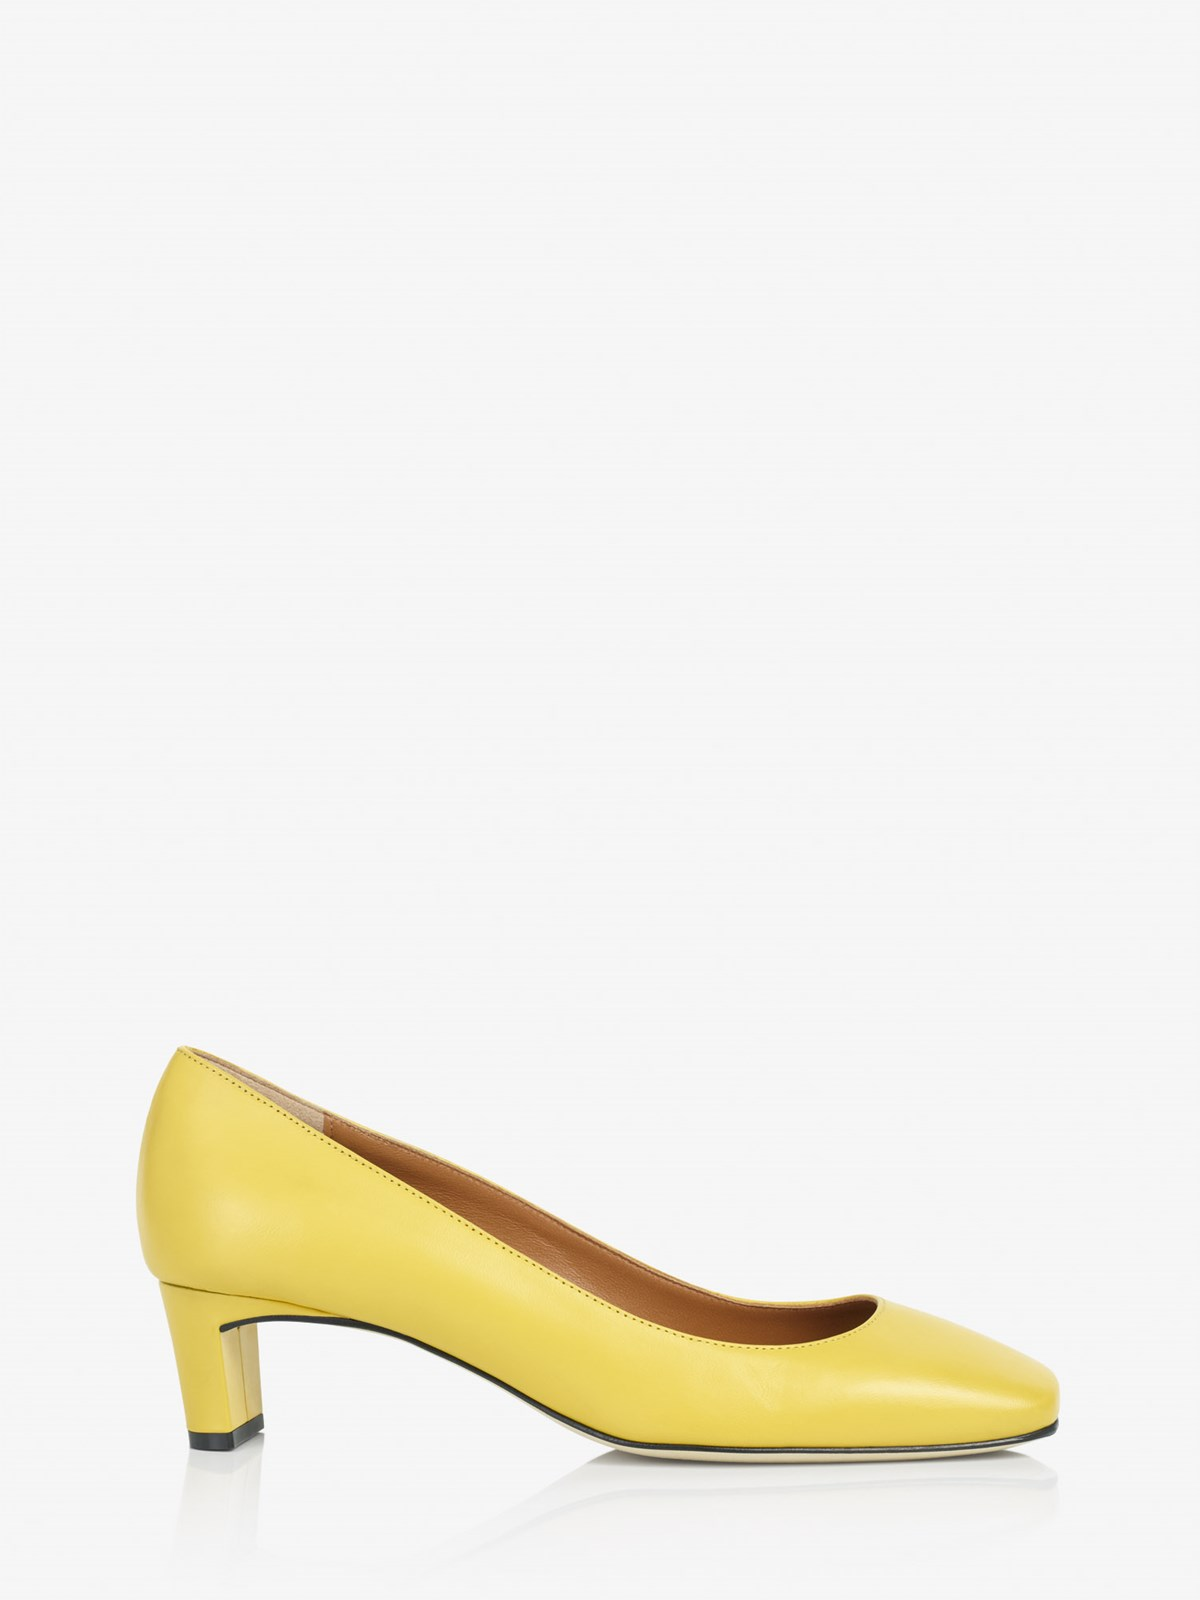 Bari Canary Yellow Pumps